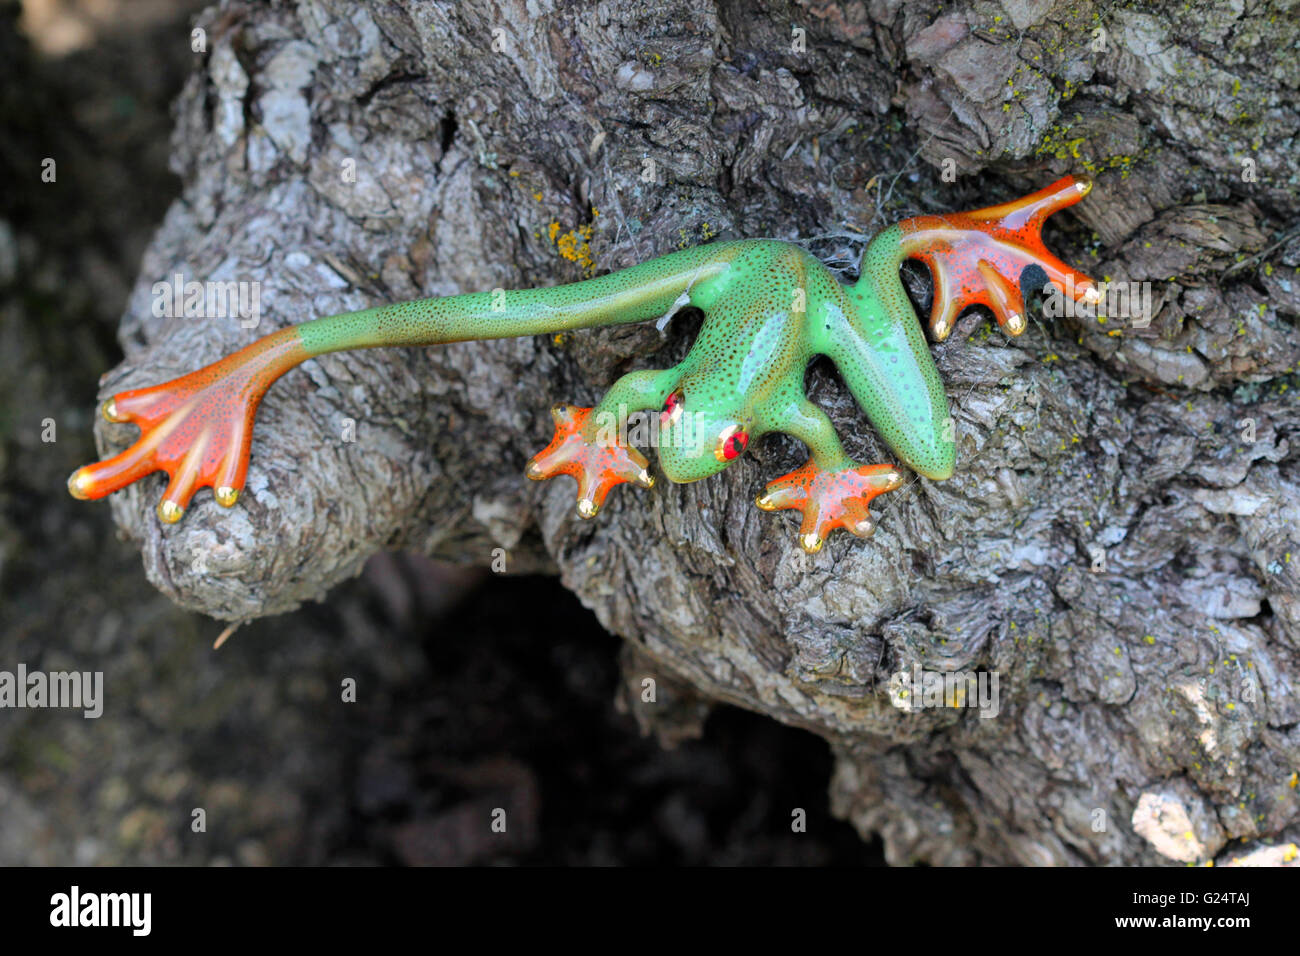 This ornamental green frog statue with orange feet is decorated with tiny small black spots. - Stock Image